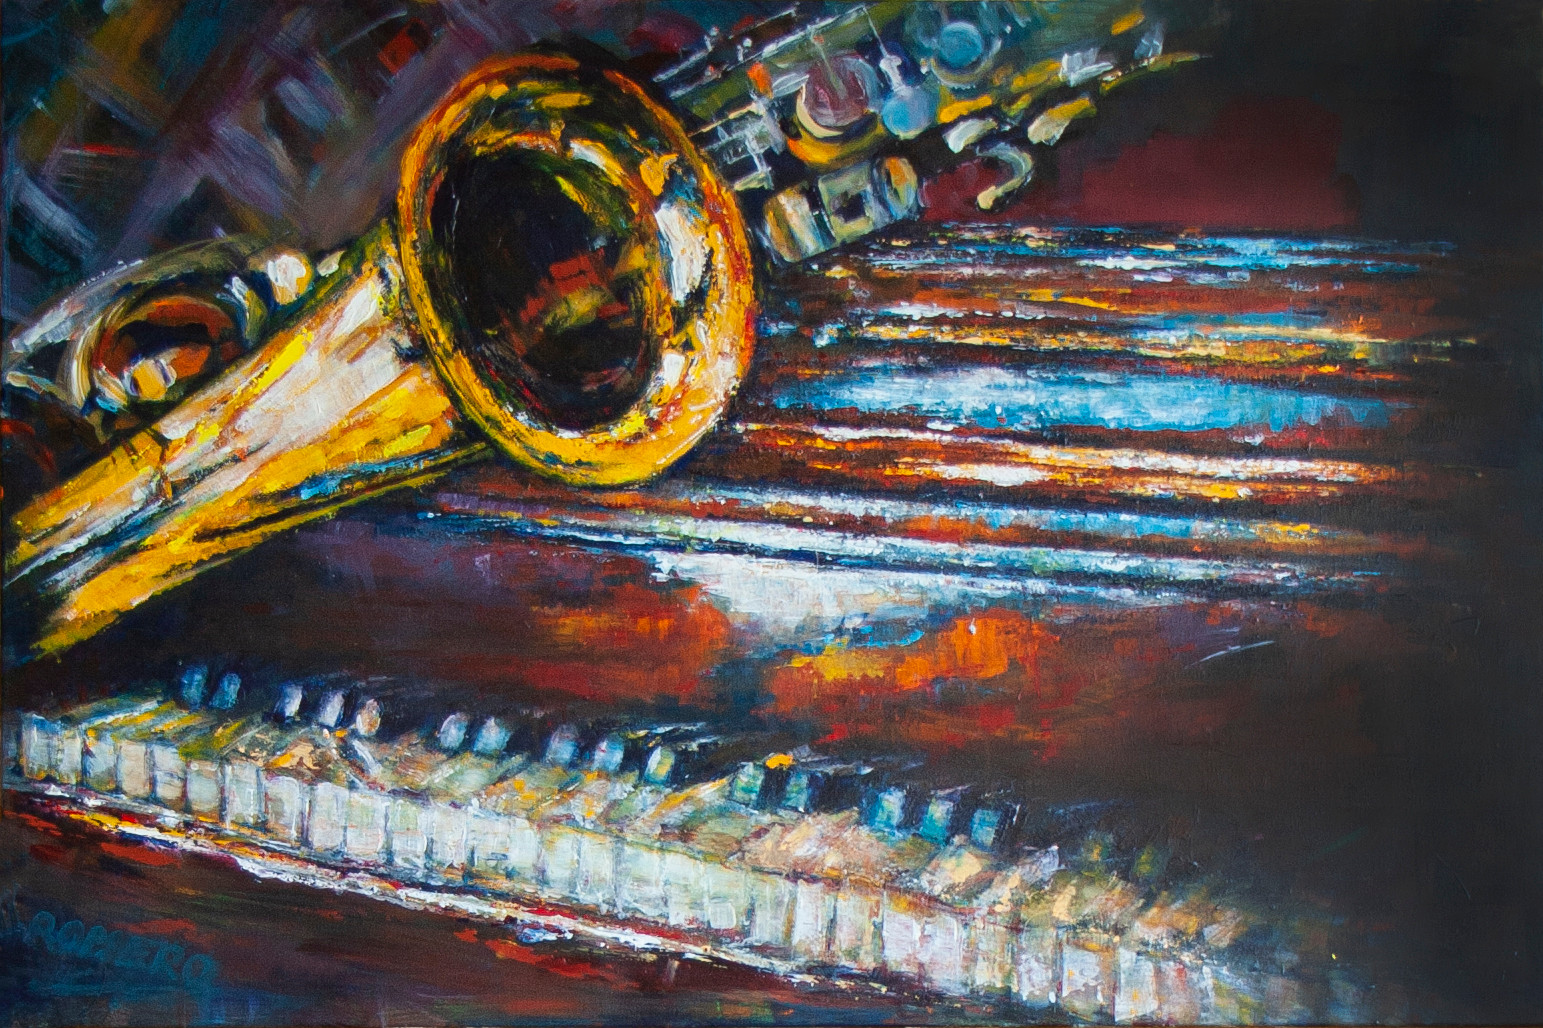 MY LOVE Dedicated to my grandfather Frans Jansen, who was a talented musician